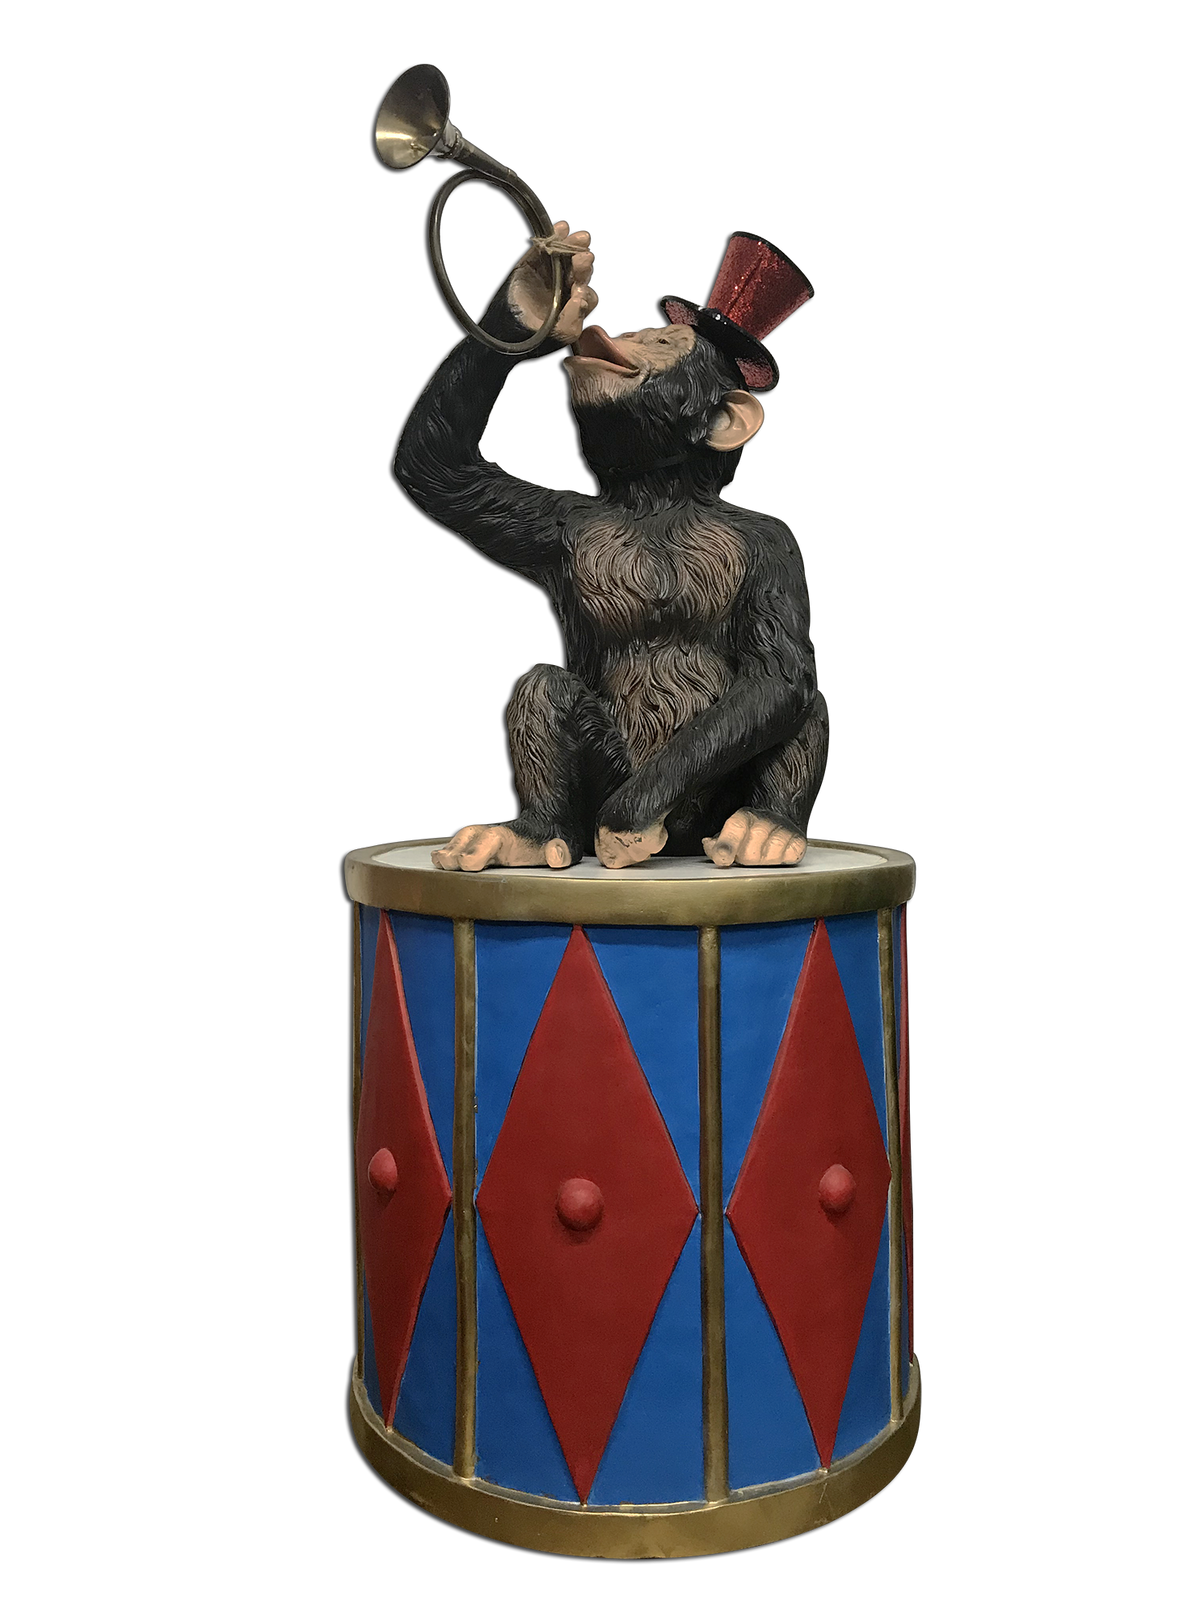 Circus Monkey With Blue Drum